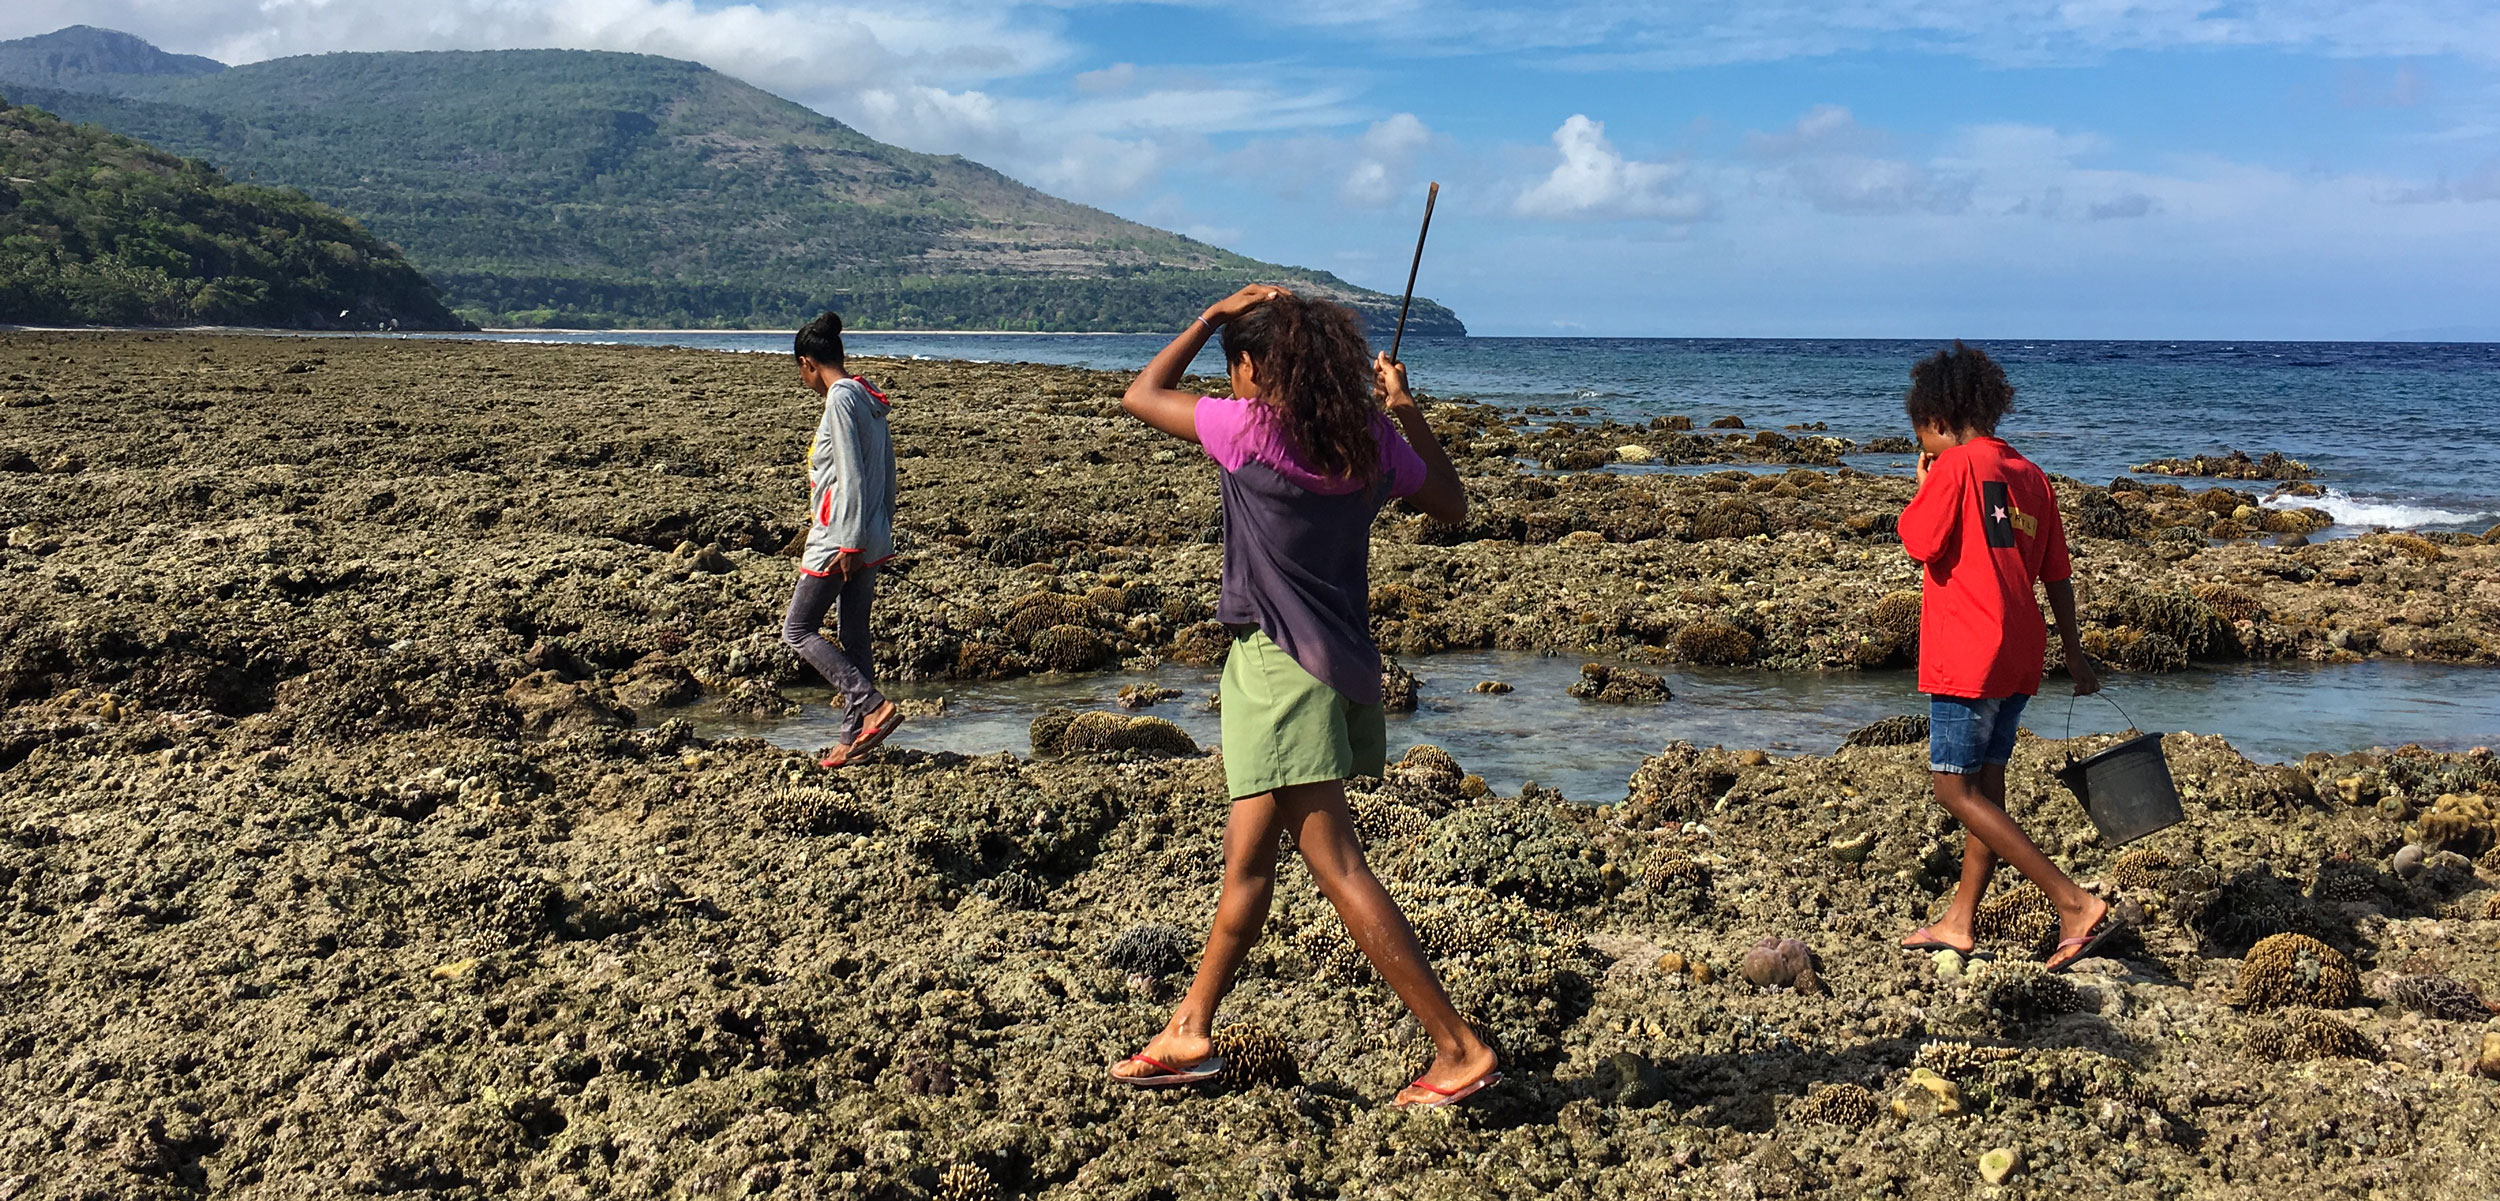 Women forage for marine animals on the rocky shore near Adara, a village on Atauro Island, Timor-Leste